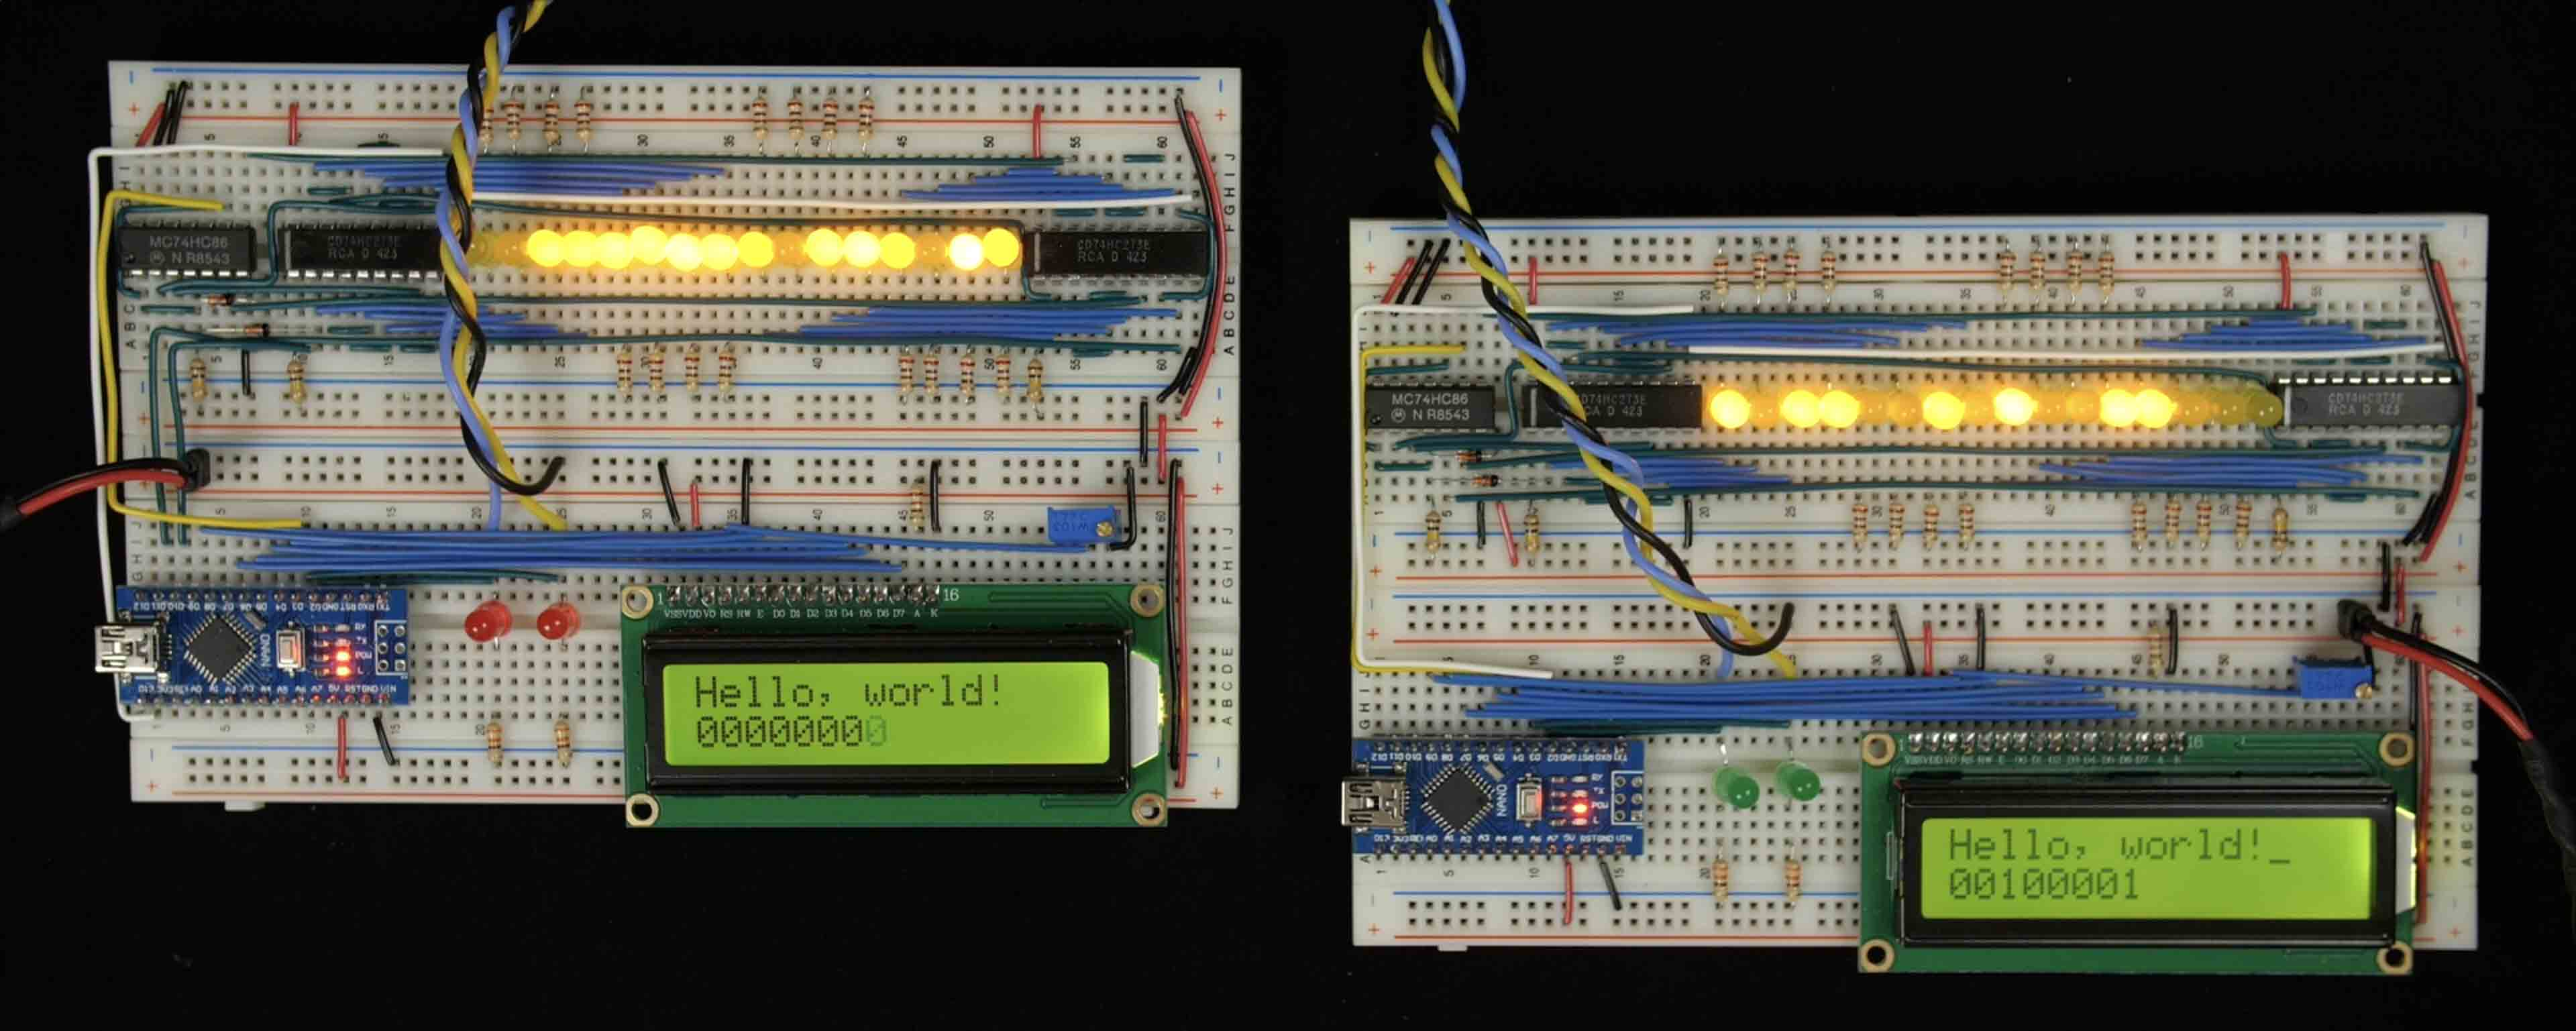 Ben Eater Parallel Circuit Breadboard The Read Board Is Broken Up Learn About Error Detection